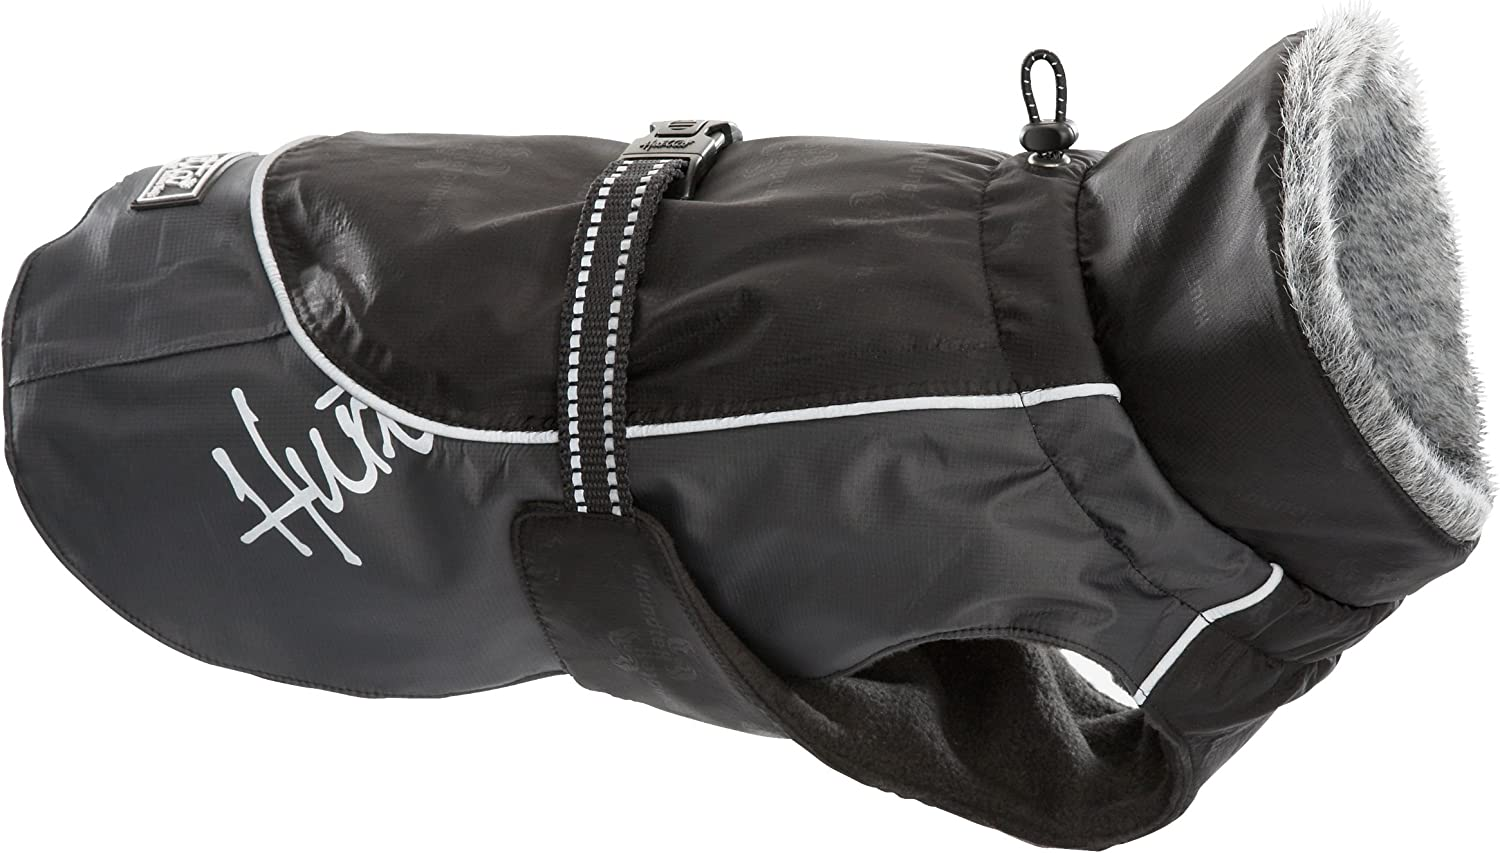 Hurtta Pet Collection Winter Jacket, 9Inch Length, 1214Inch Neck, 1418Inch Chest, Black